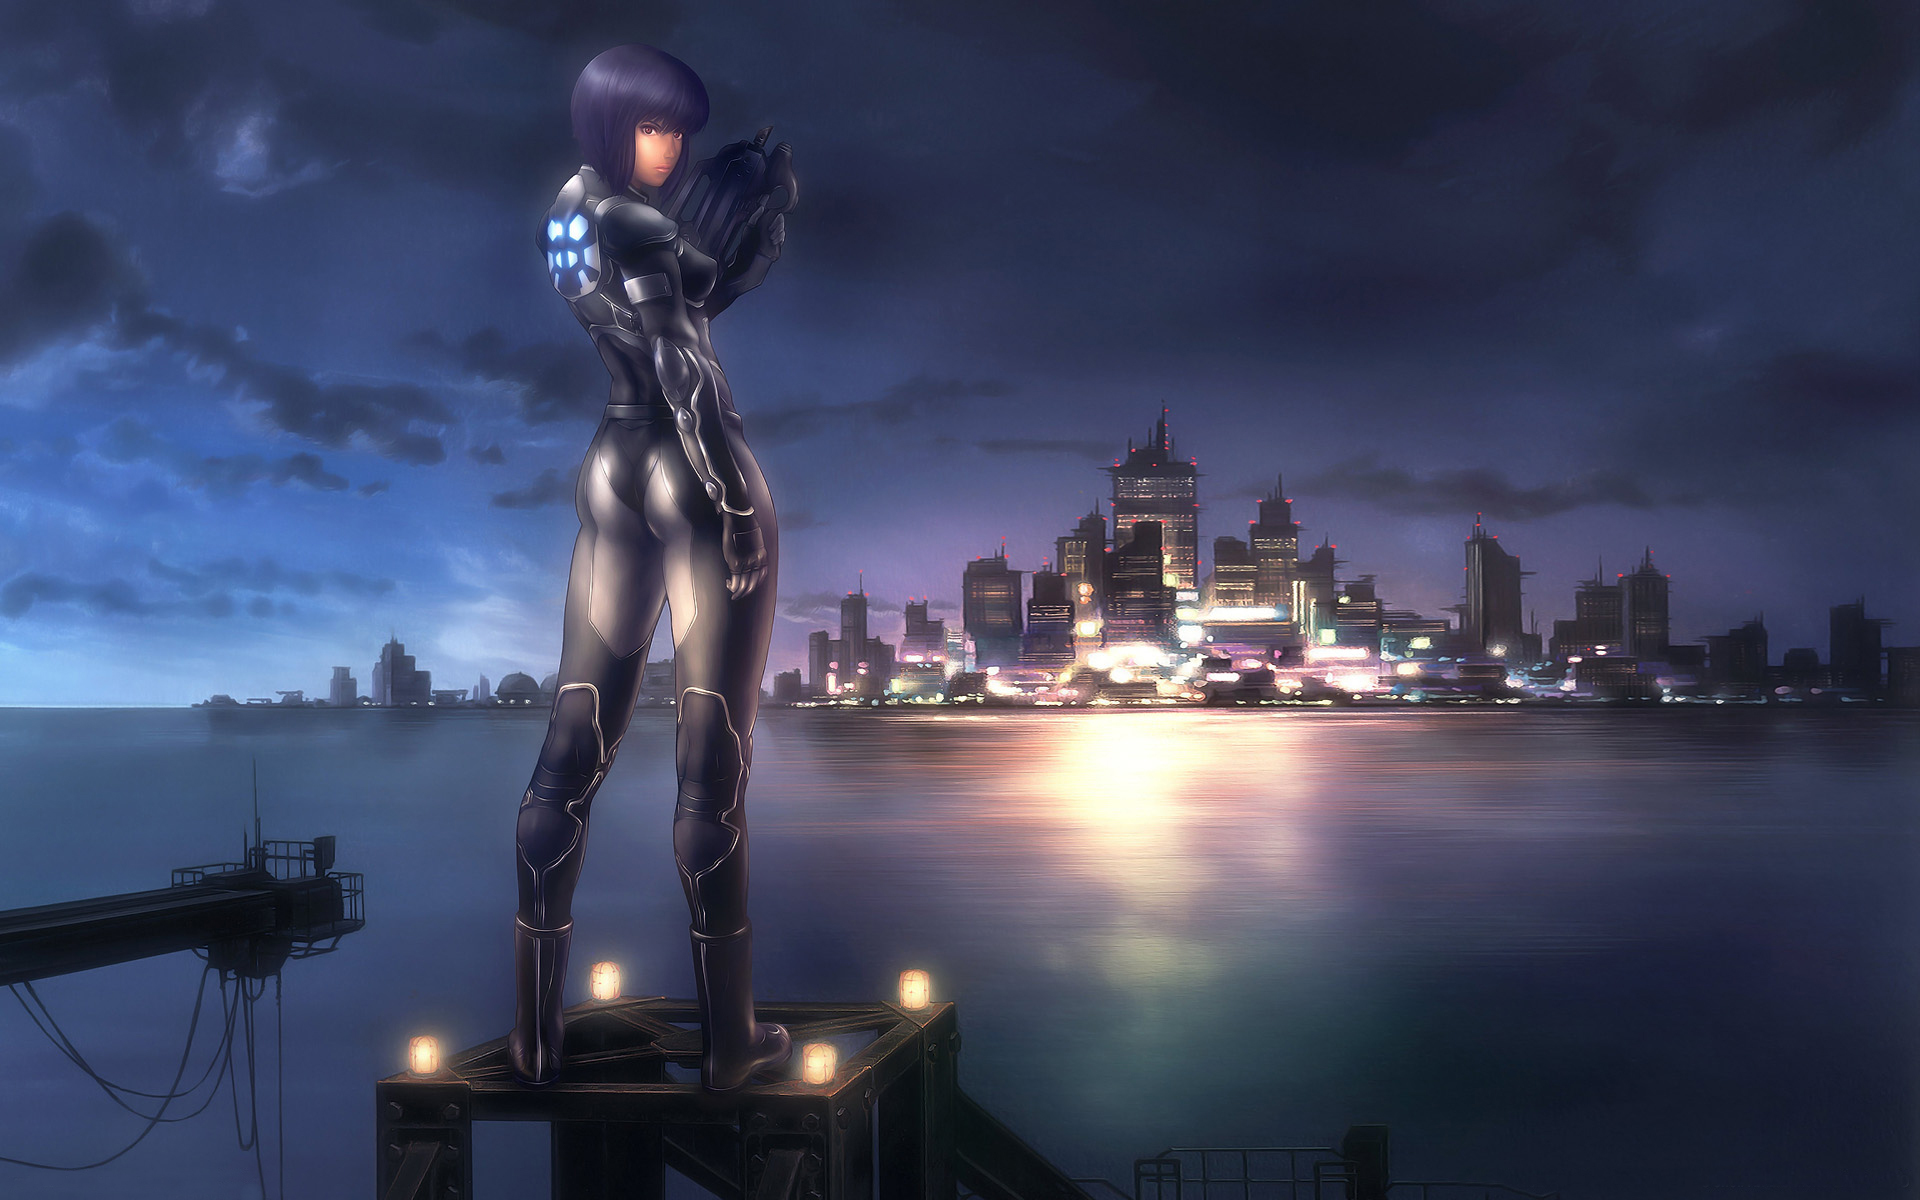 Ghost In The Shell Background 1286710 Hd Wallpaper Backgrounds Download